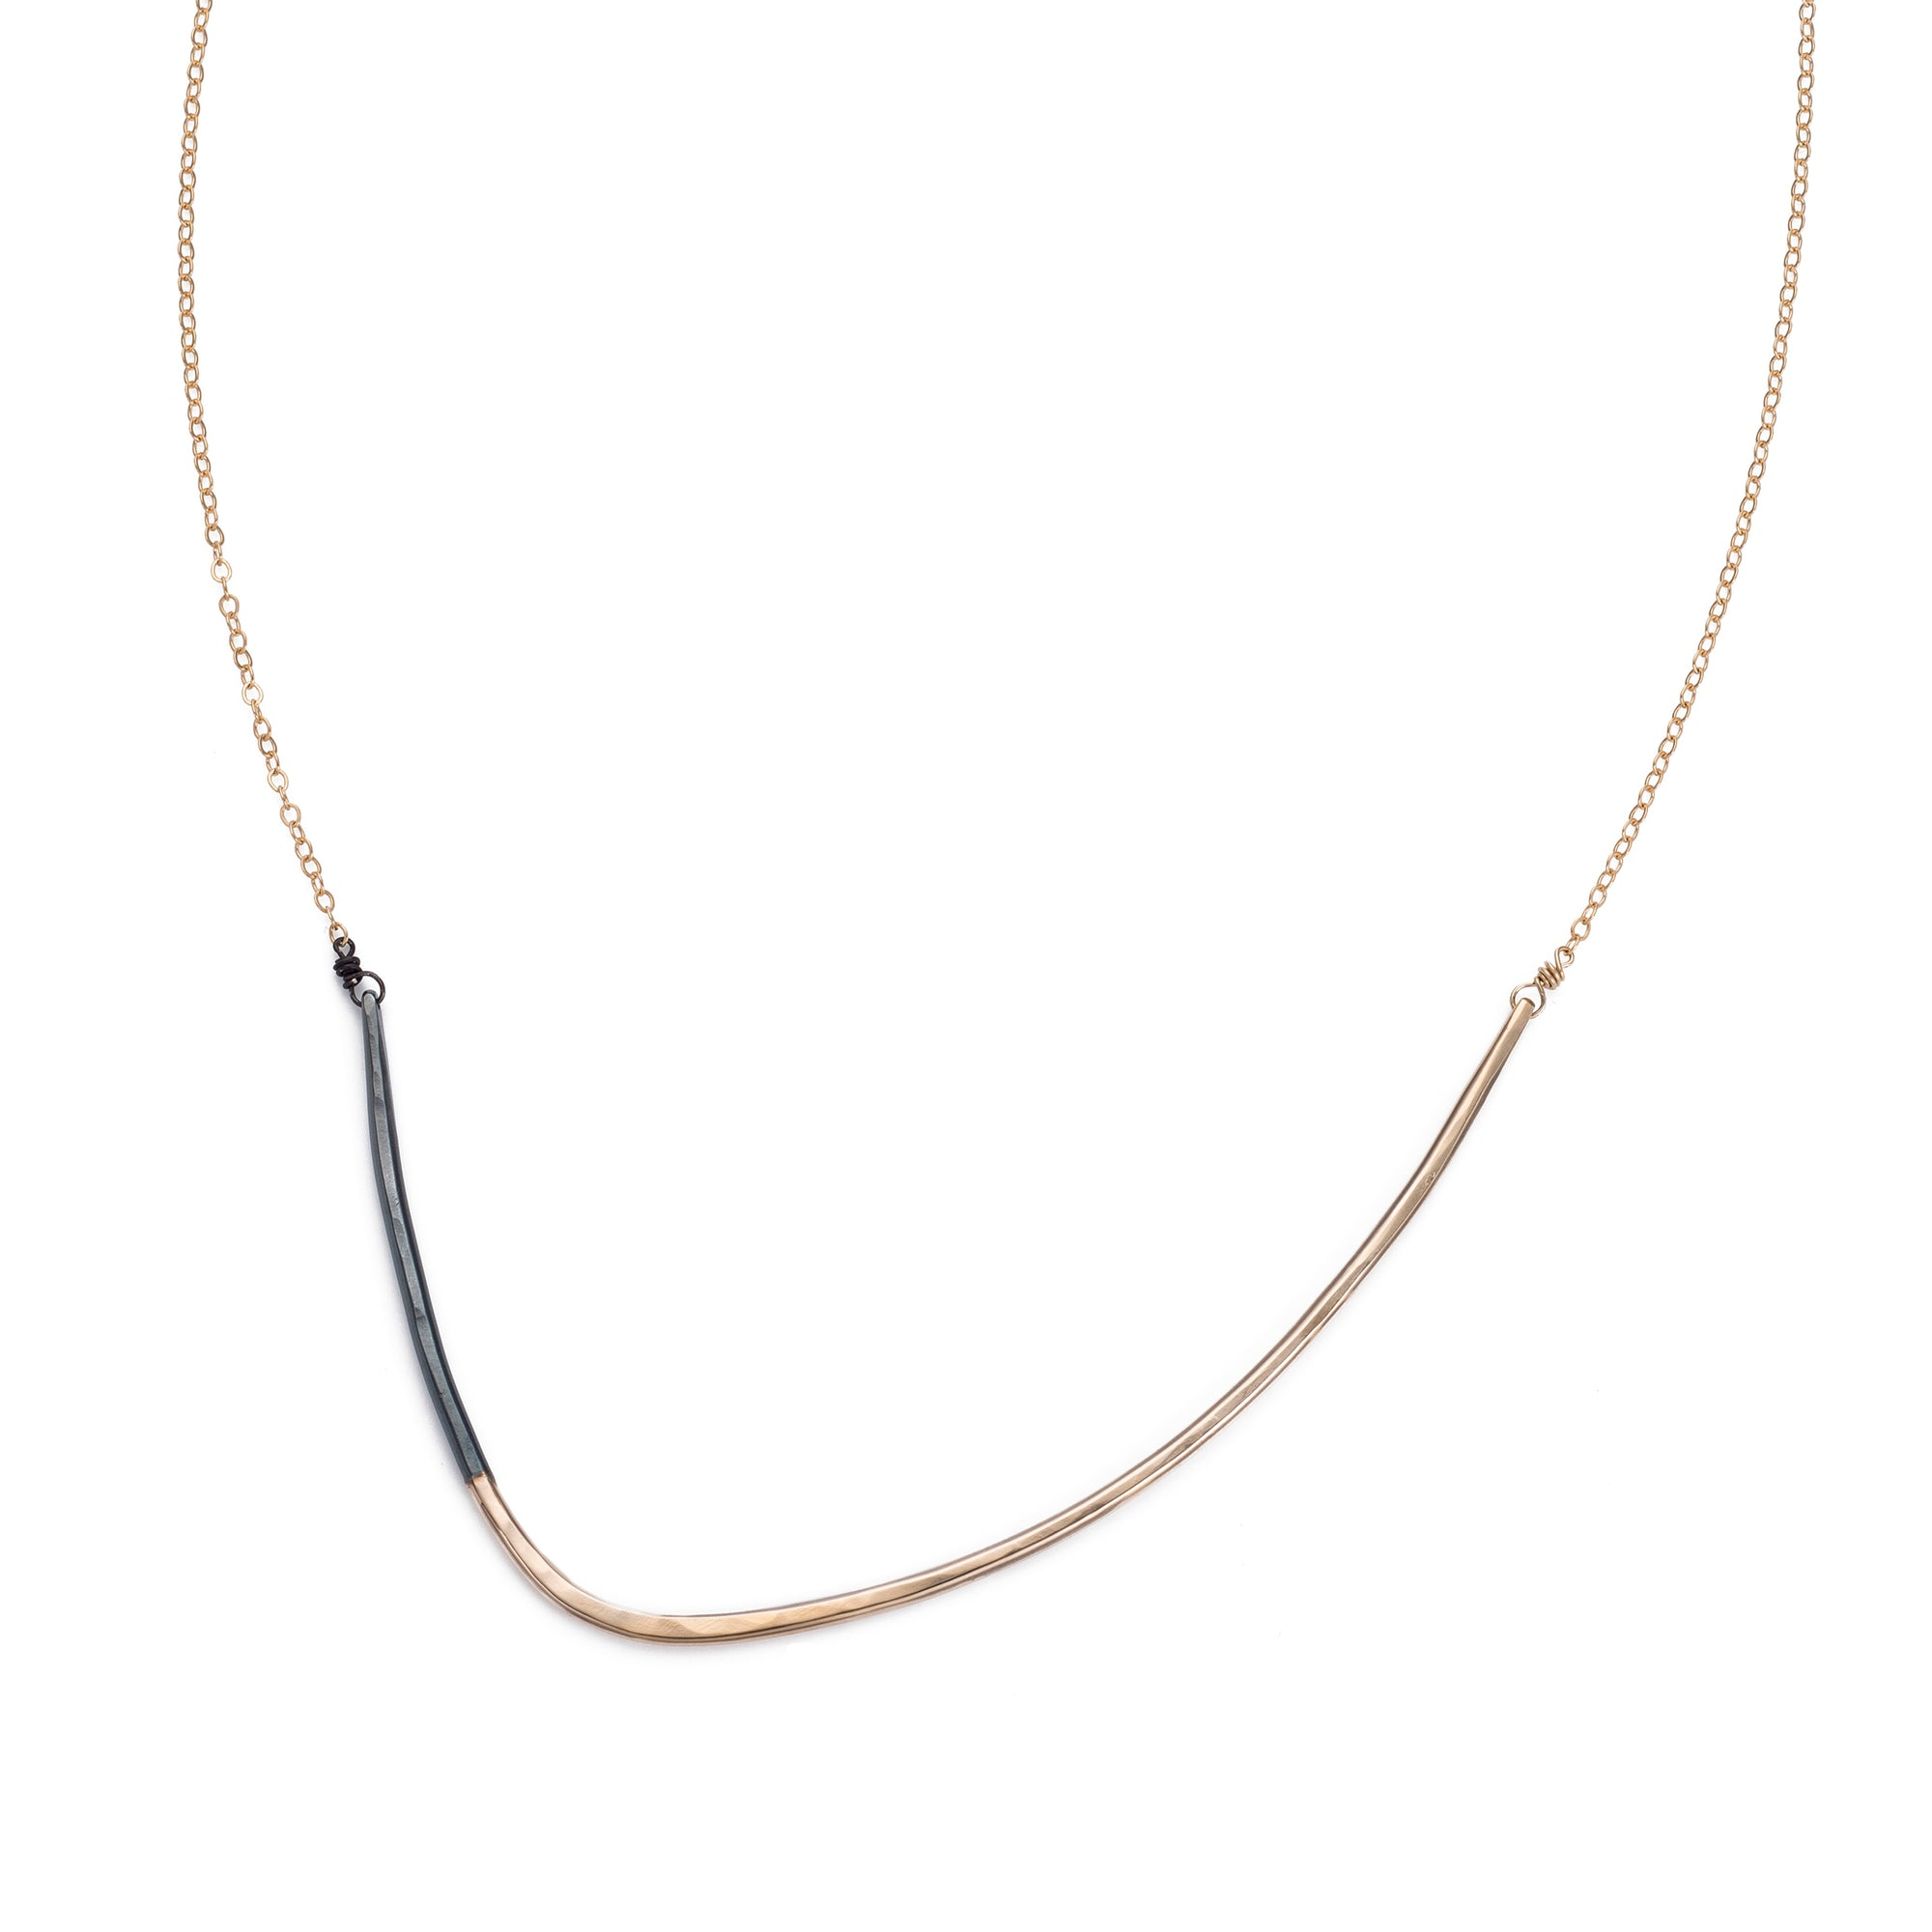 Black & Gold Inflecto Necklace